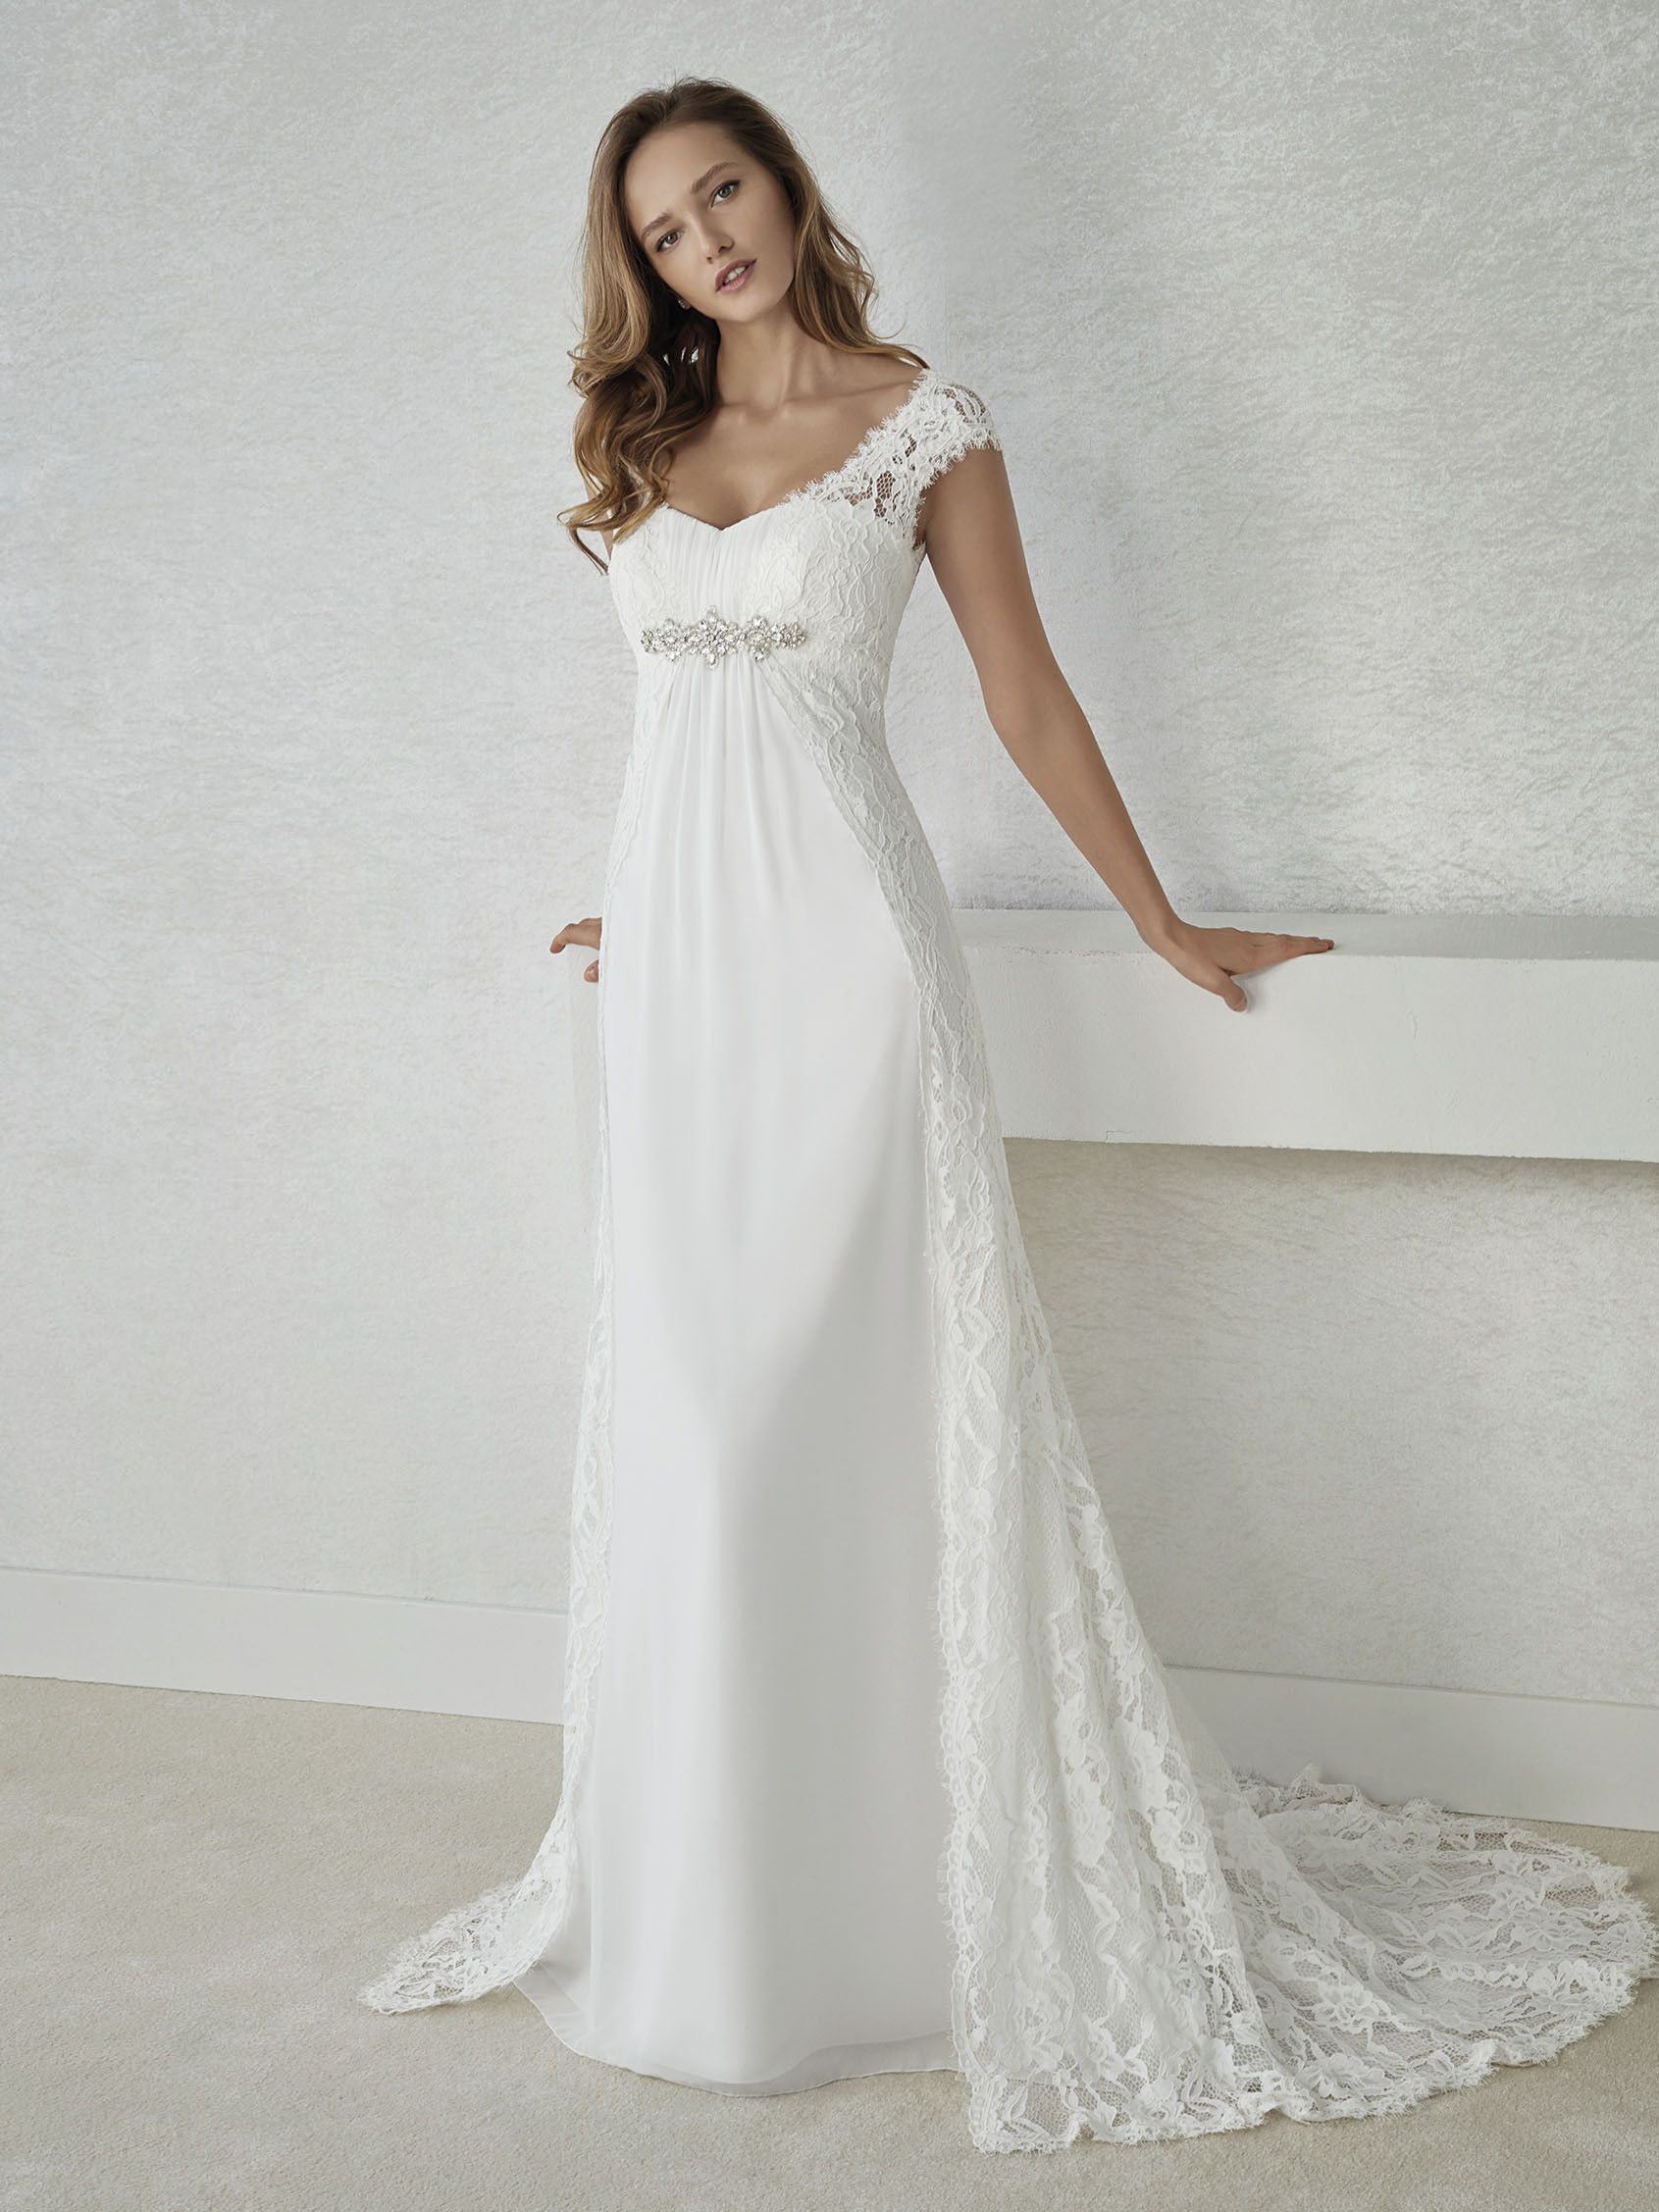 Vestiti Da Sposa Stile Impero.I Like The Lace Overskirt Train Fiel Abito Da Sposa Stile Impero